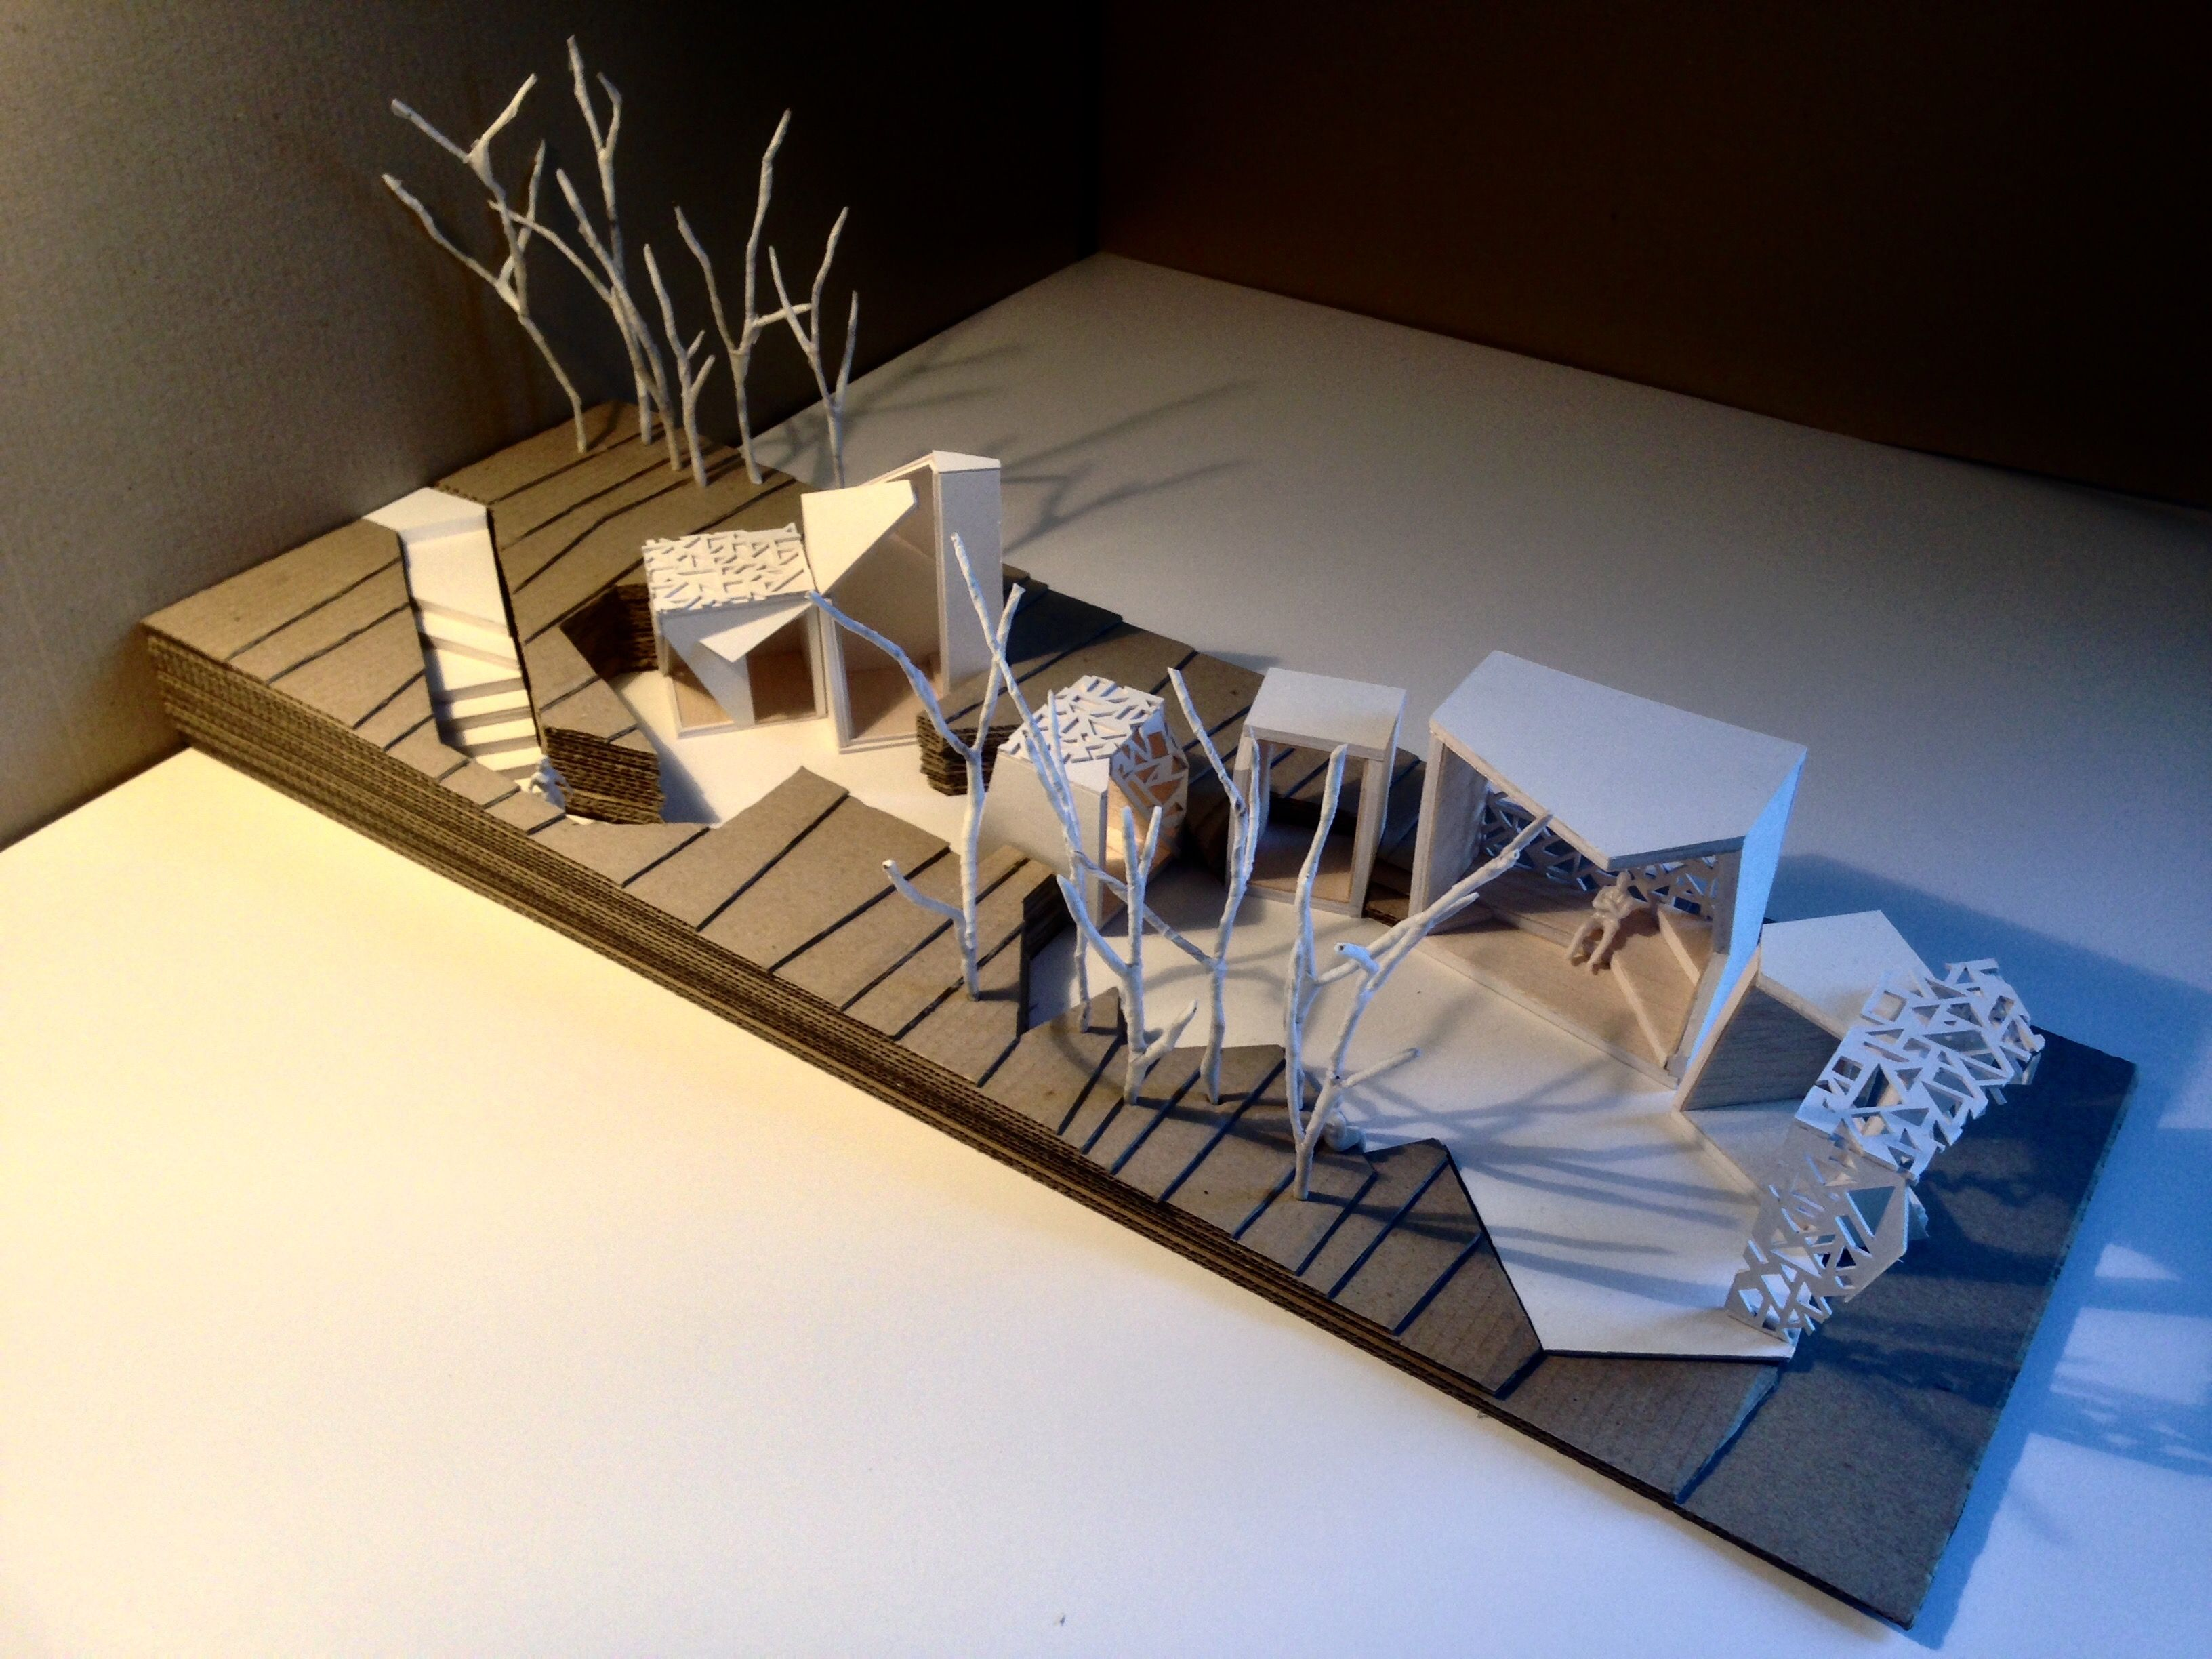 Find This Pin And More On Architecture Design Studio 1, Assignment 3 UniSA  Interior Architecture By Martinealdahn.